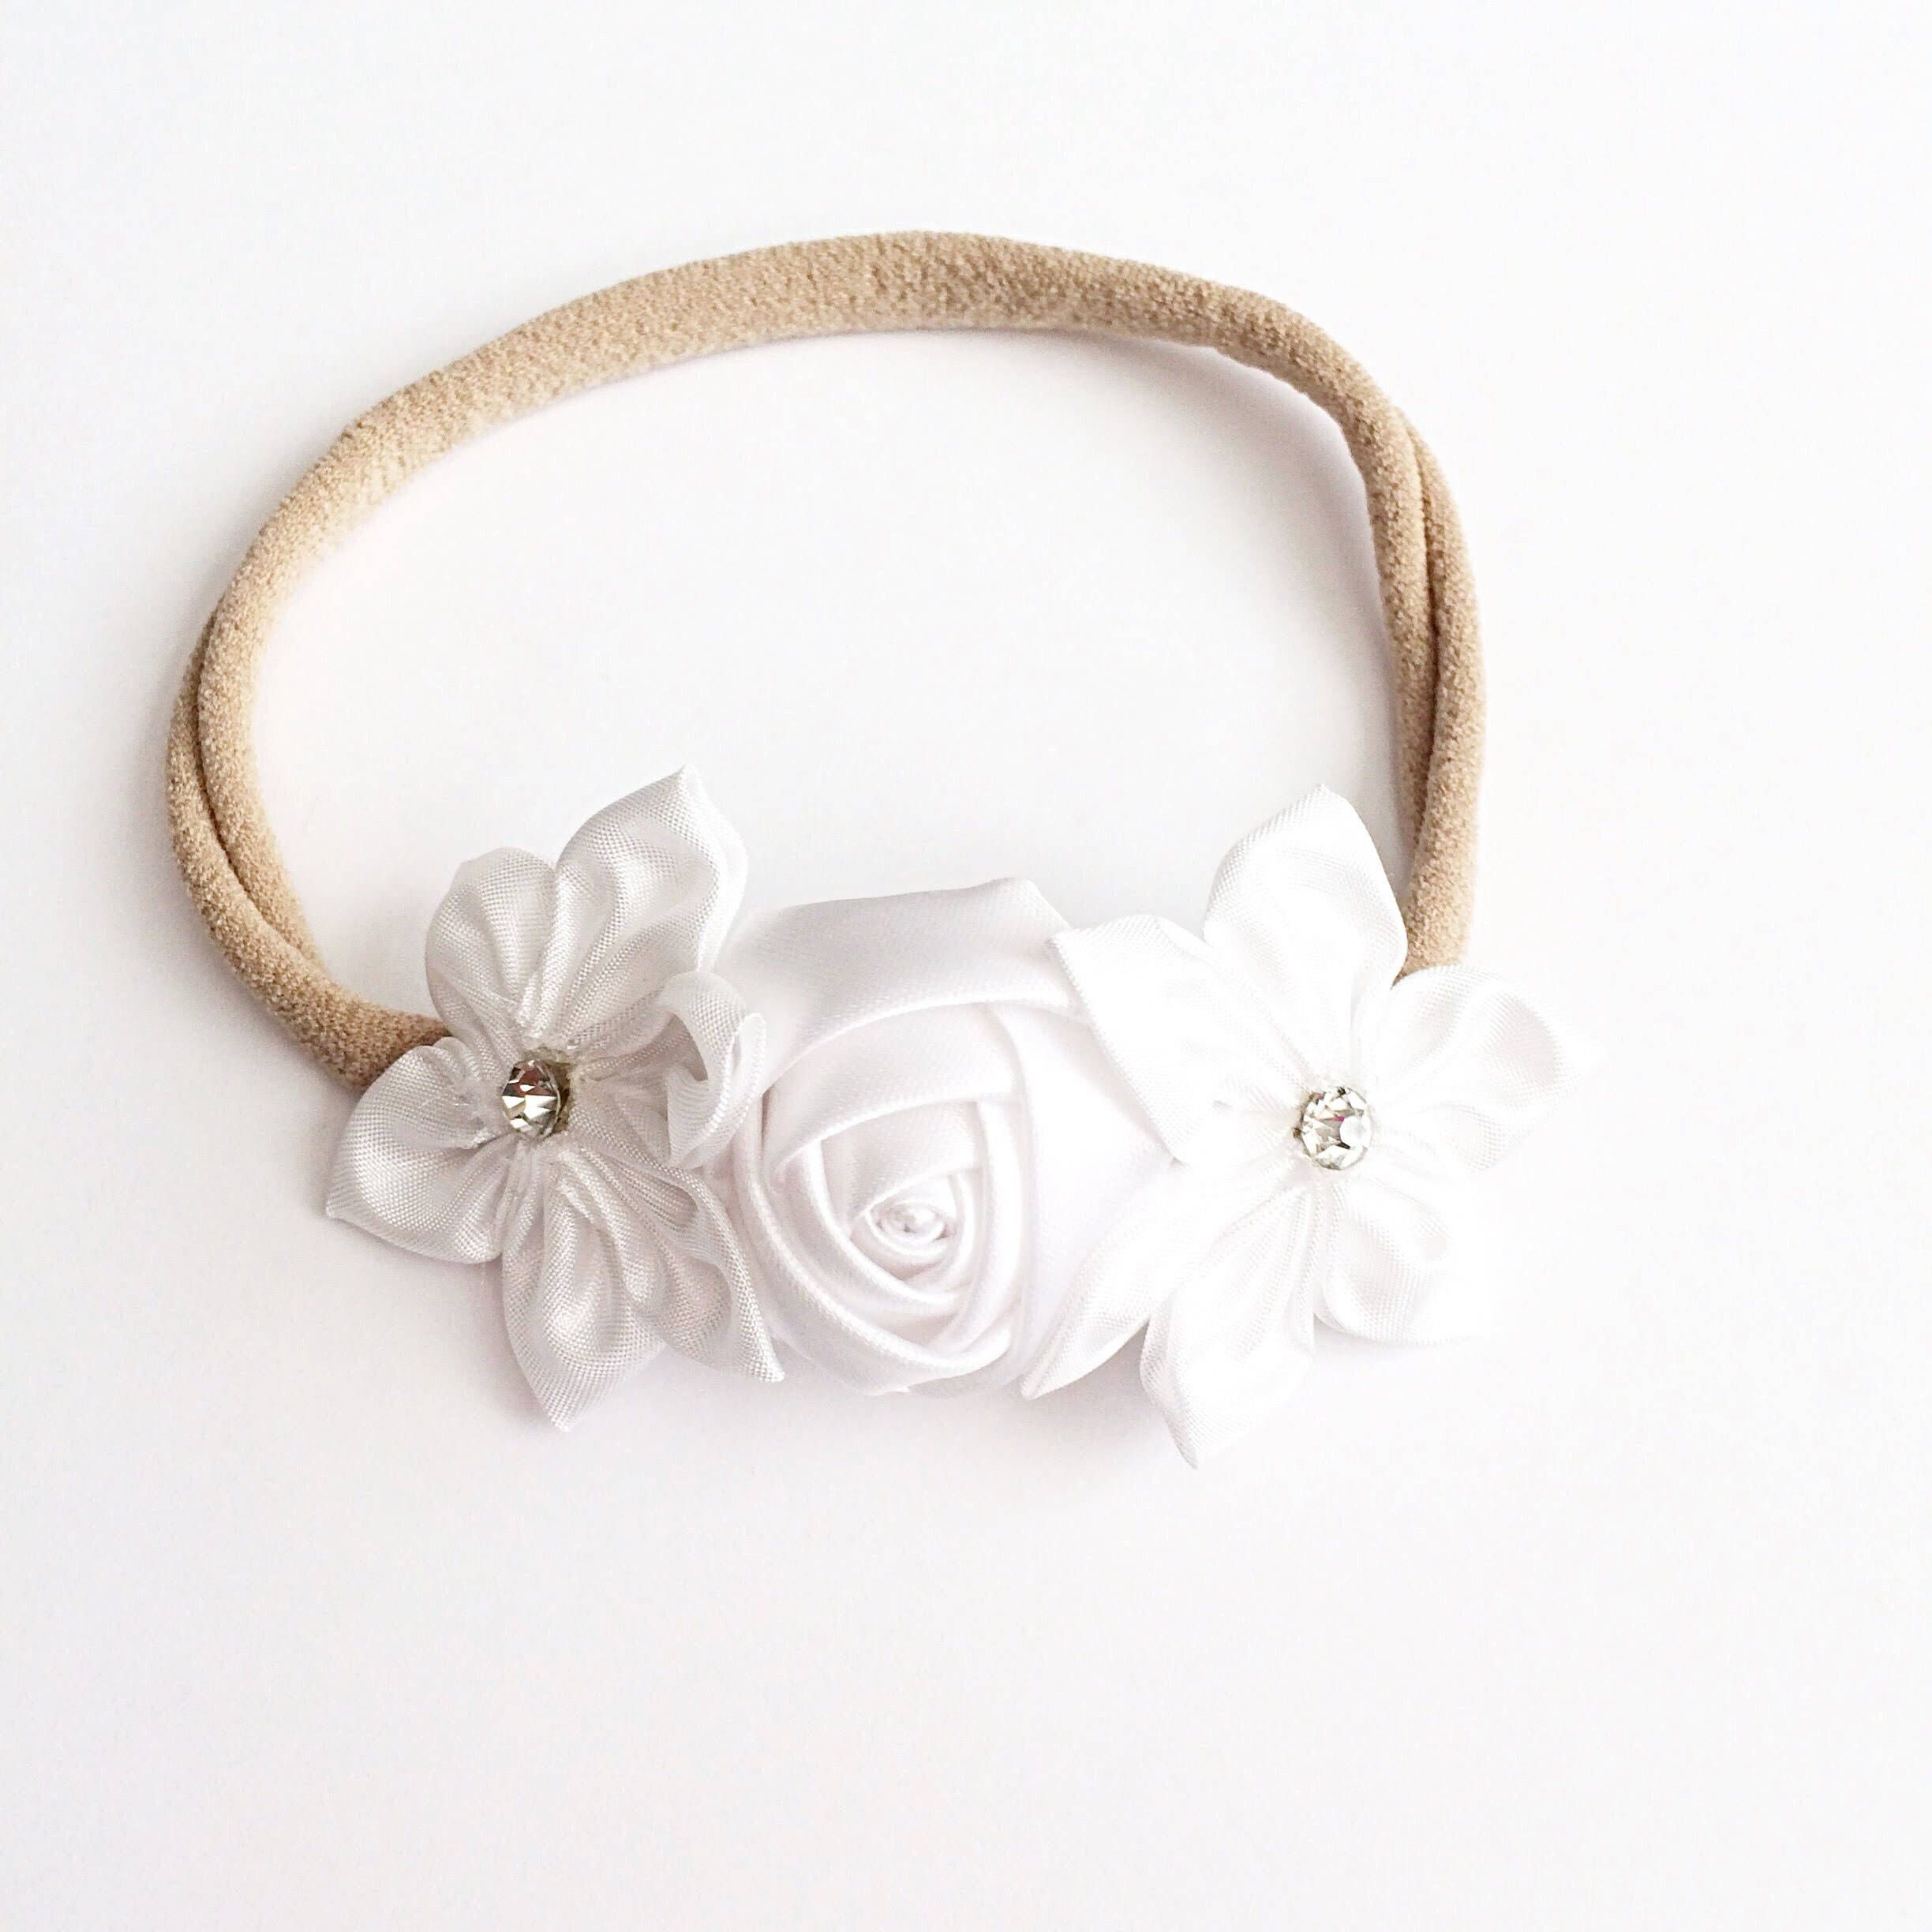 White Flower Headband Or Flower Crown On Nylon Headband With Jewel